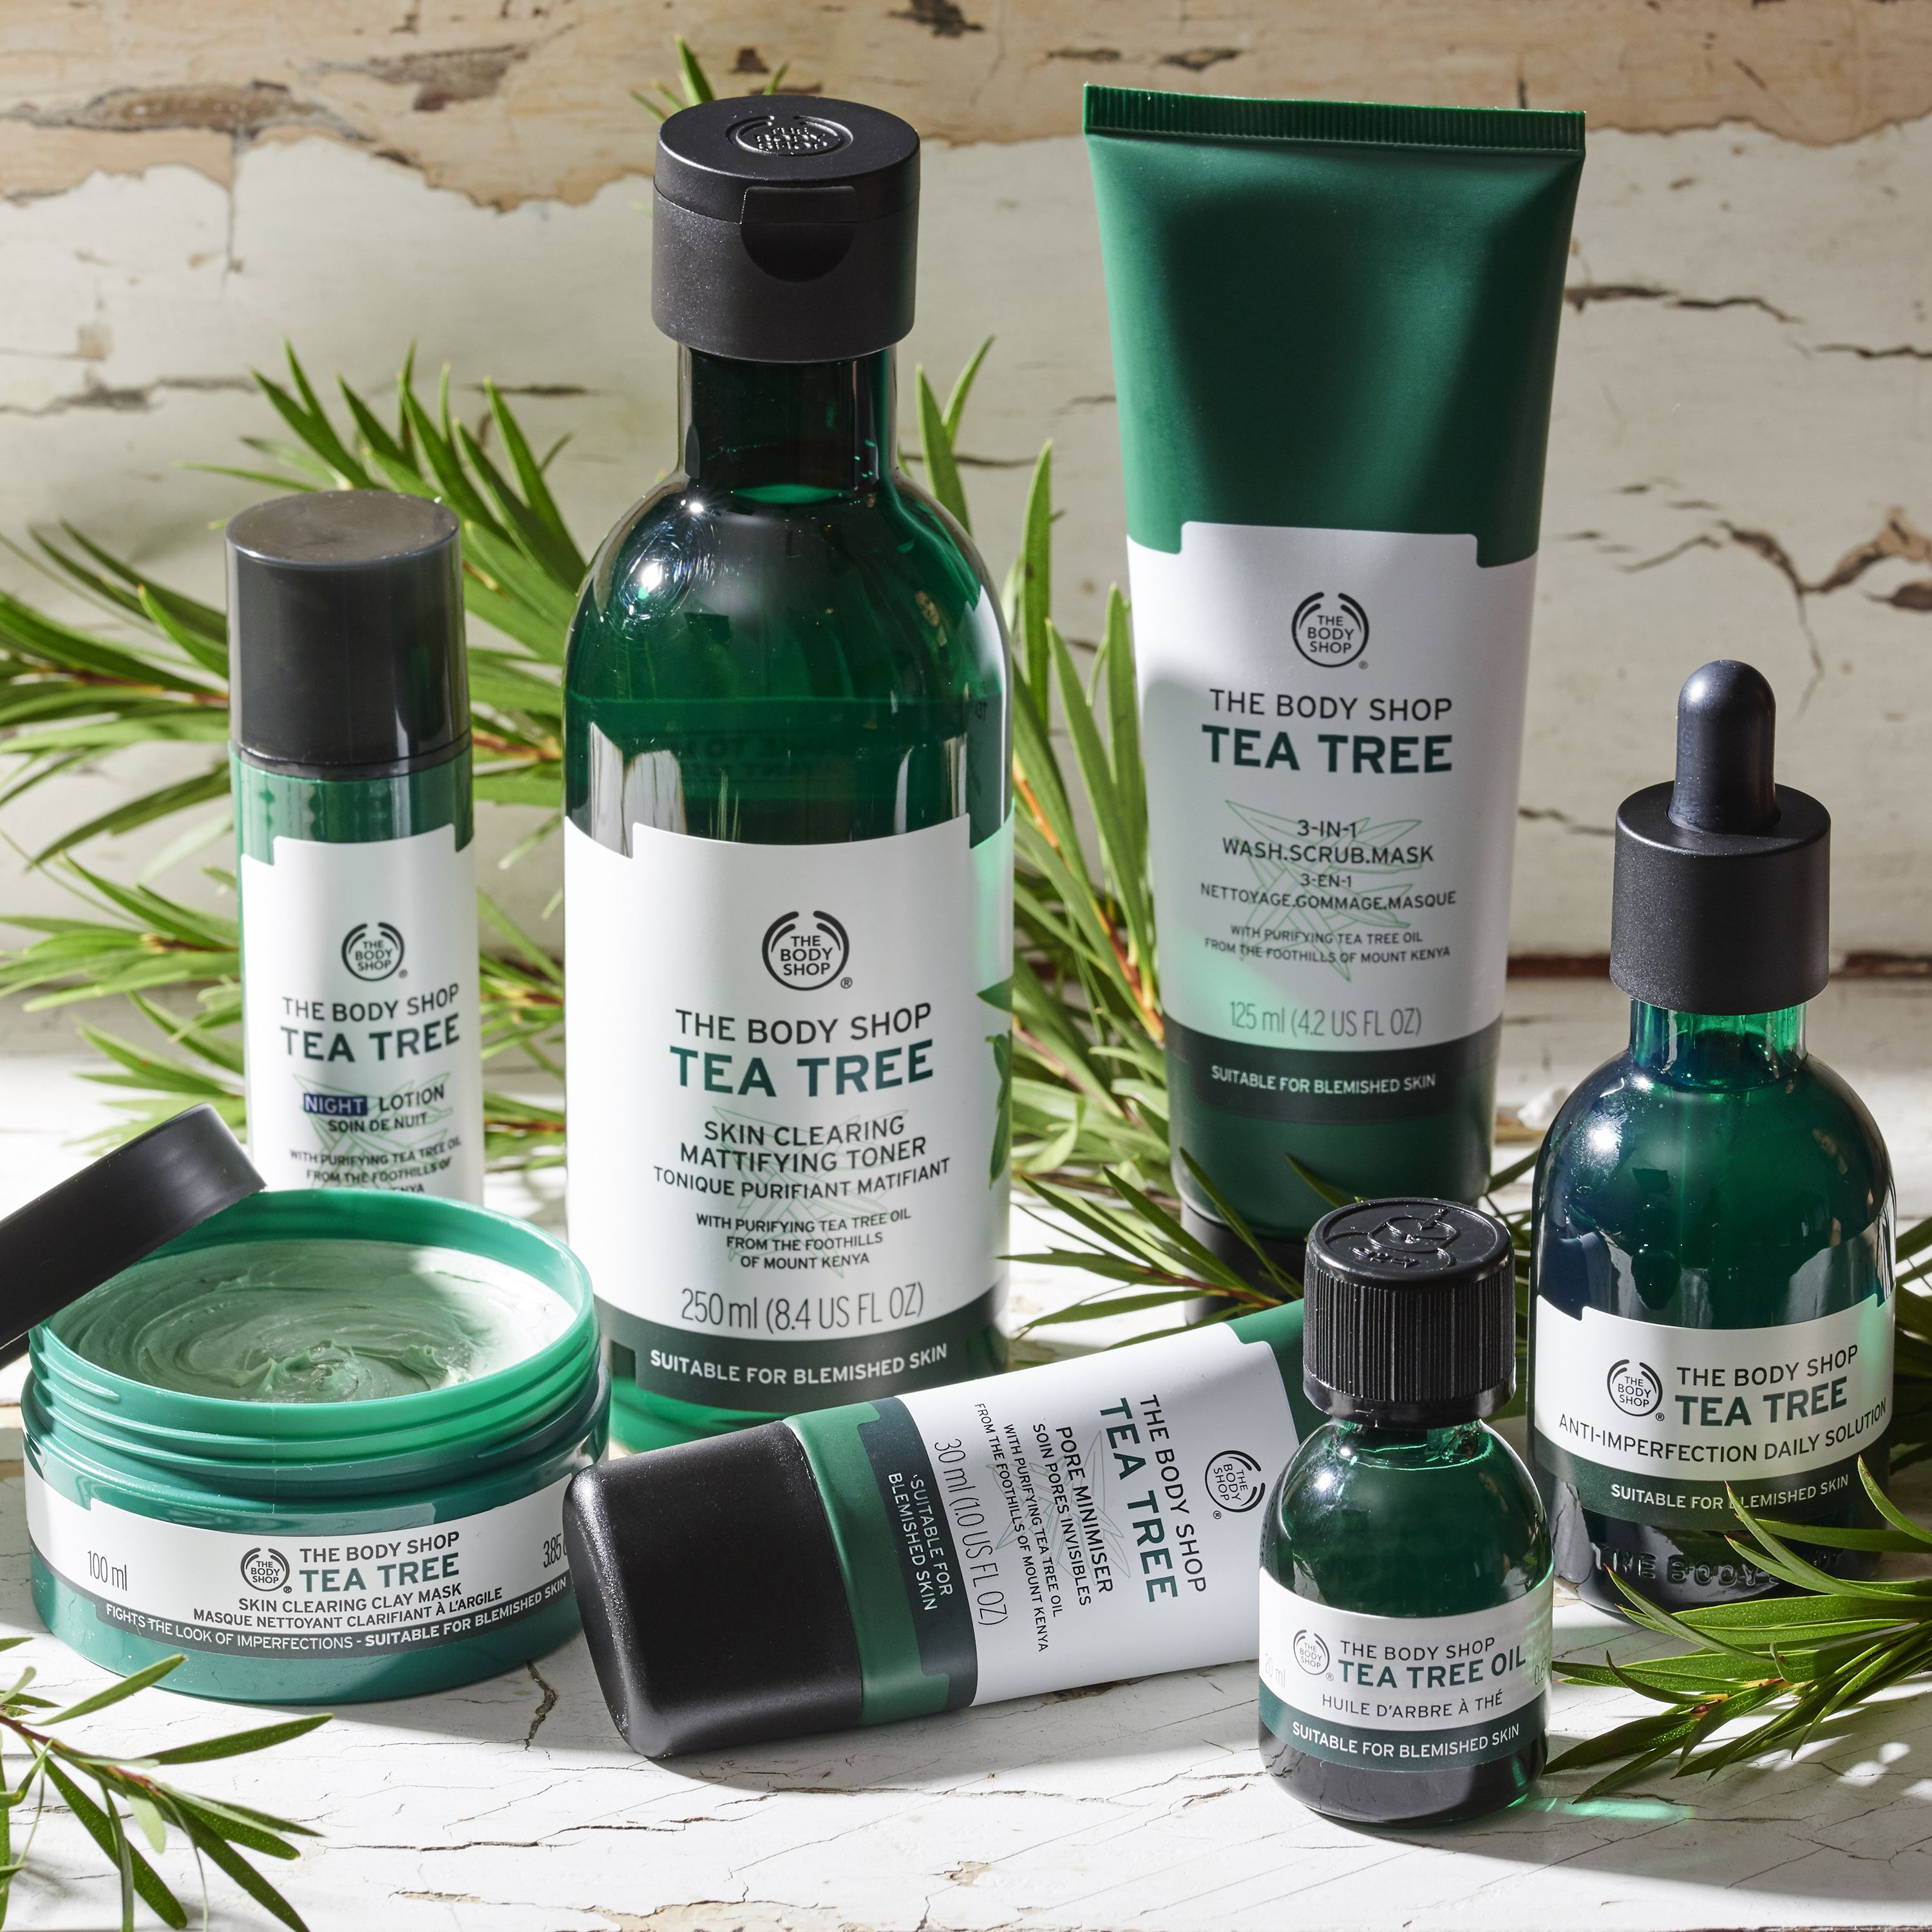 Stay On It With Our Community Trade Tea Tree Range For Smooth Skin That Feels Fresh And Looks Clear Howto Body Shop Tea Tree Body Shop Skincare The Body Shop